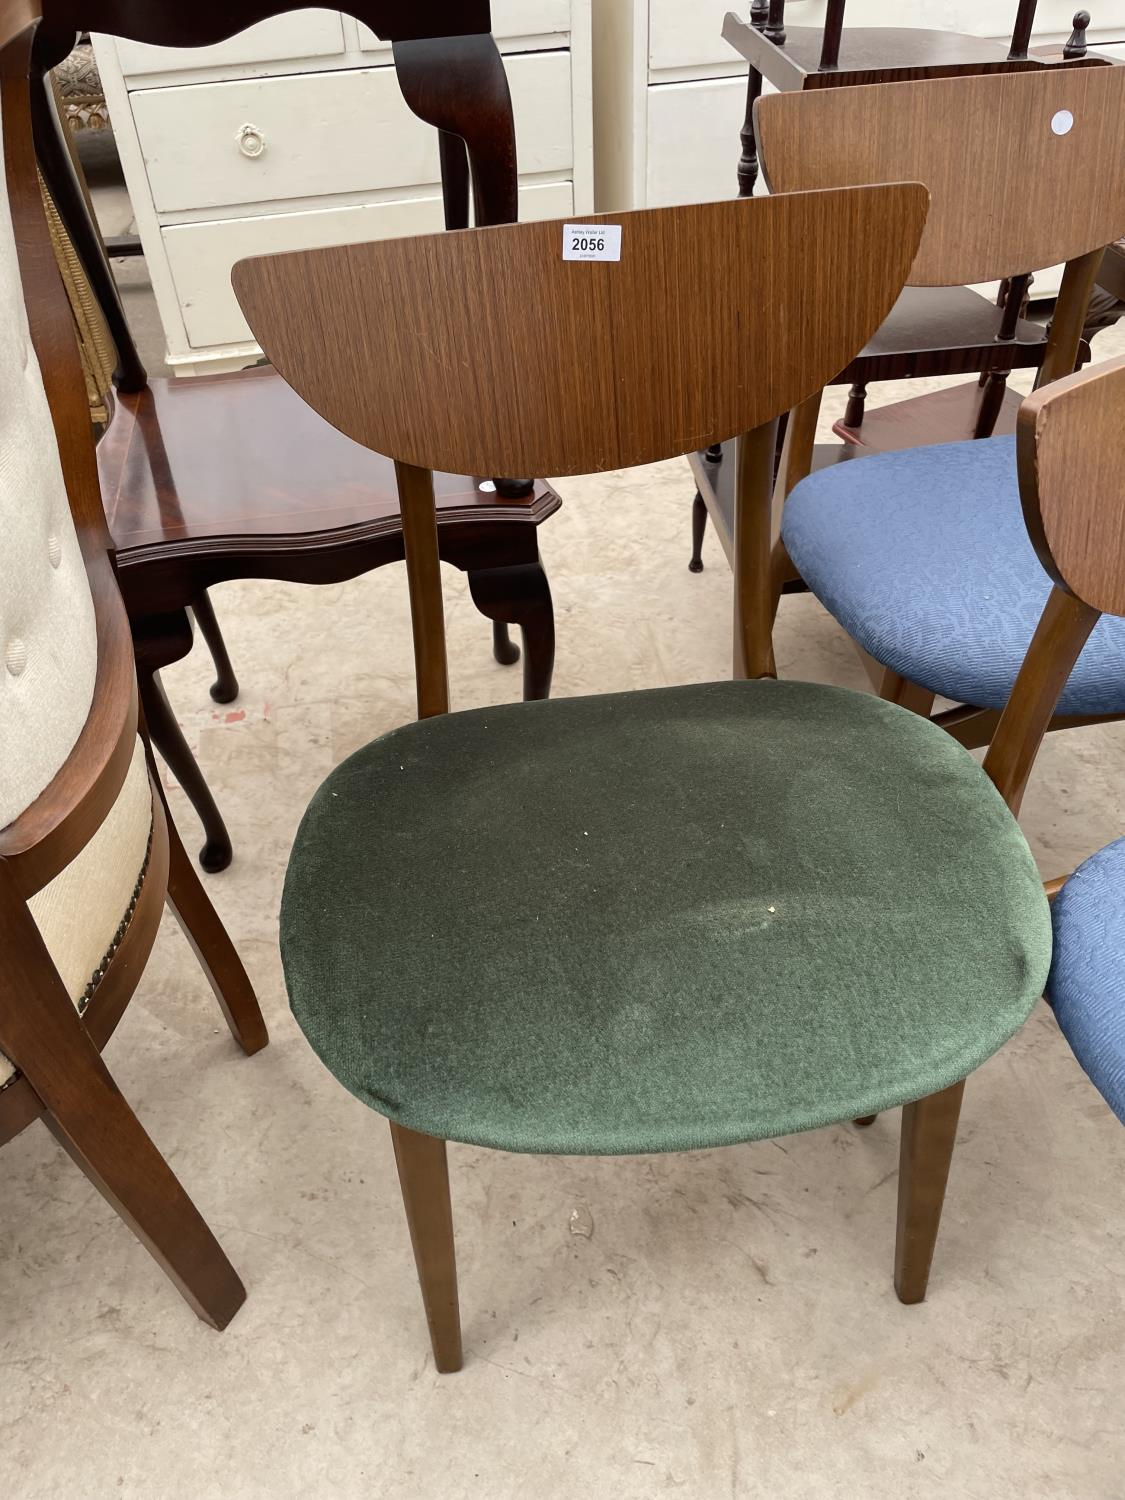 A SET OF FIVE MID 20TH CENTURY STYLE DINING CHAIRS WITH WHALE FIN BACKS - Image 2 of 10